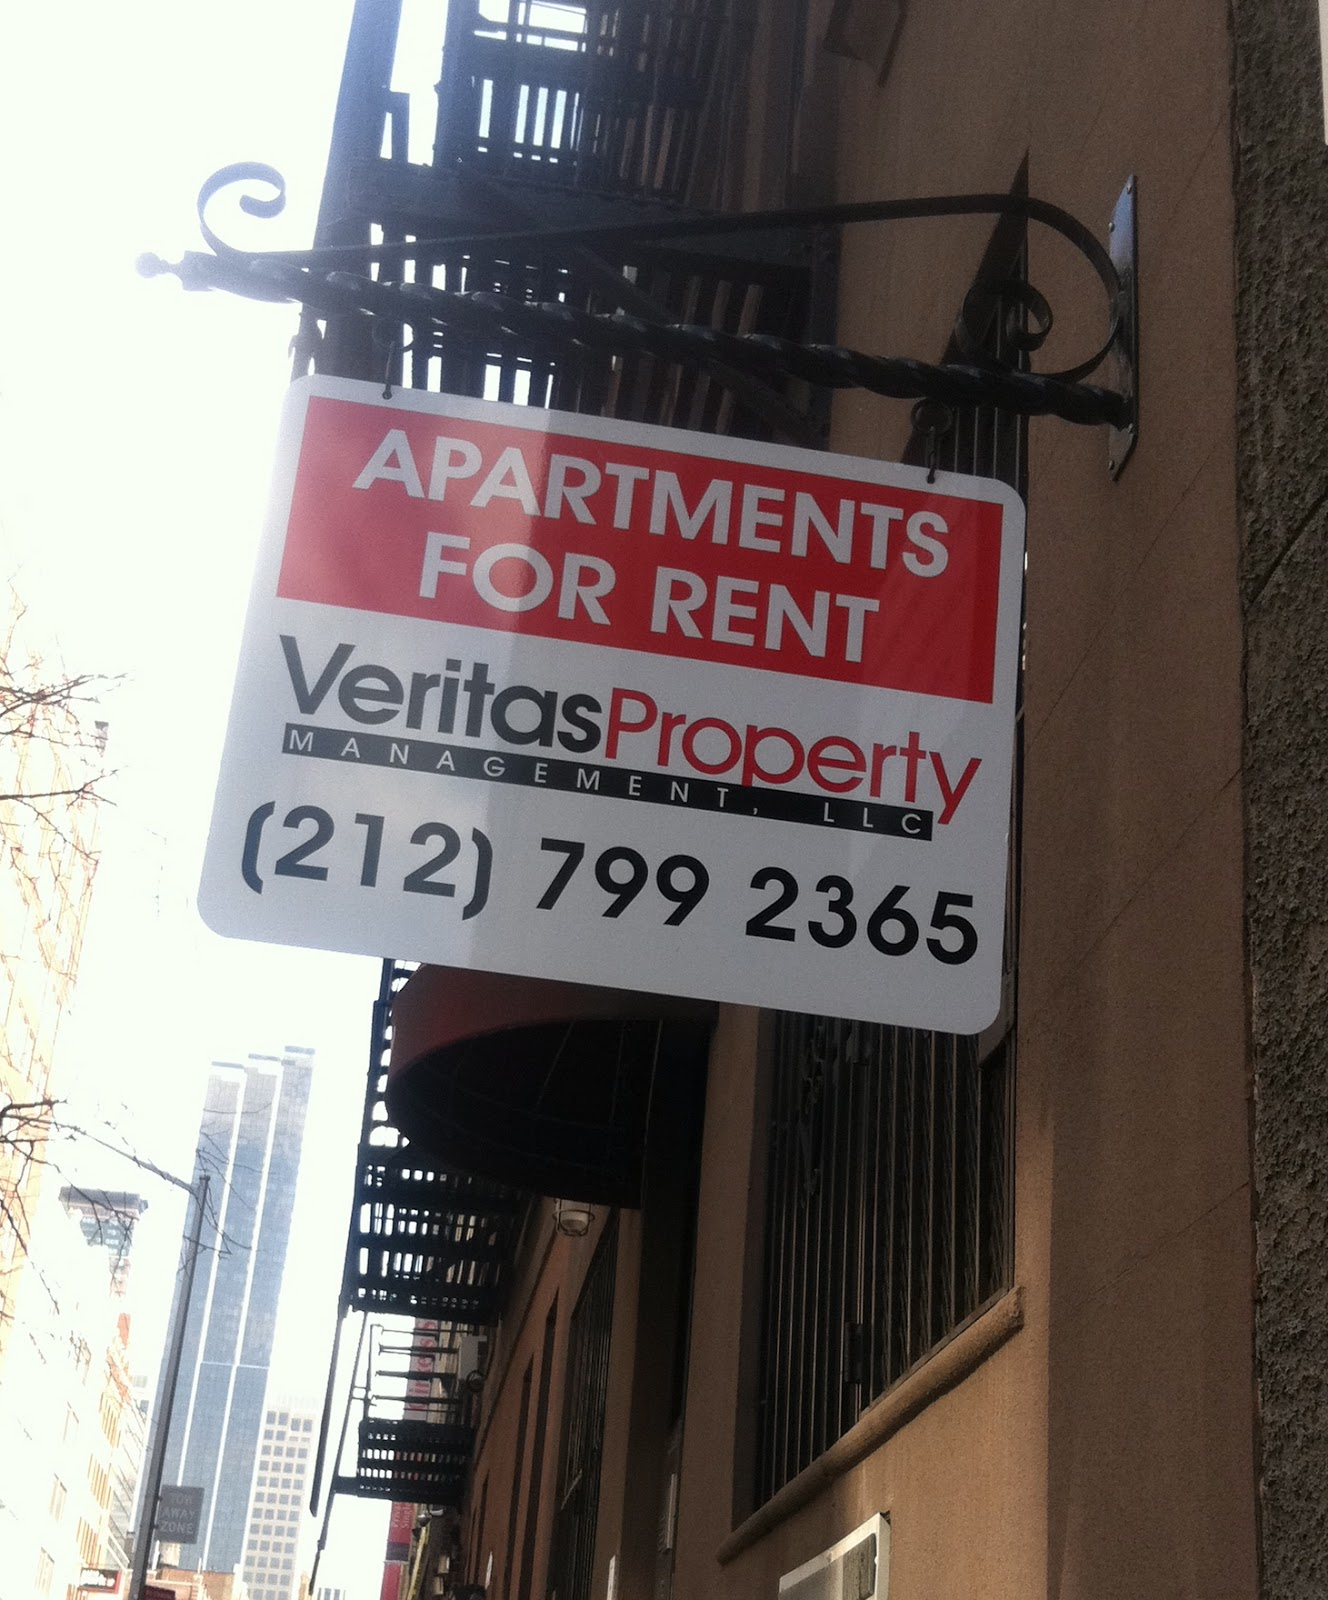 Apartment For Rent Sign: Moving To NYC 101: The Best Sites For Finding A NO-FEE